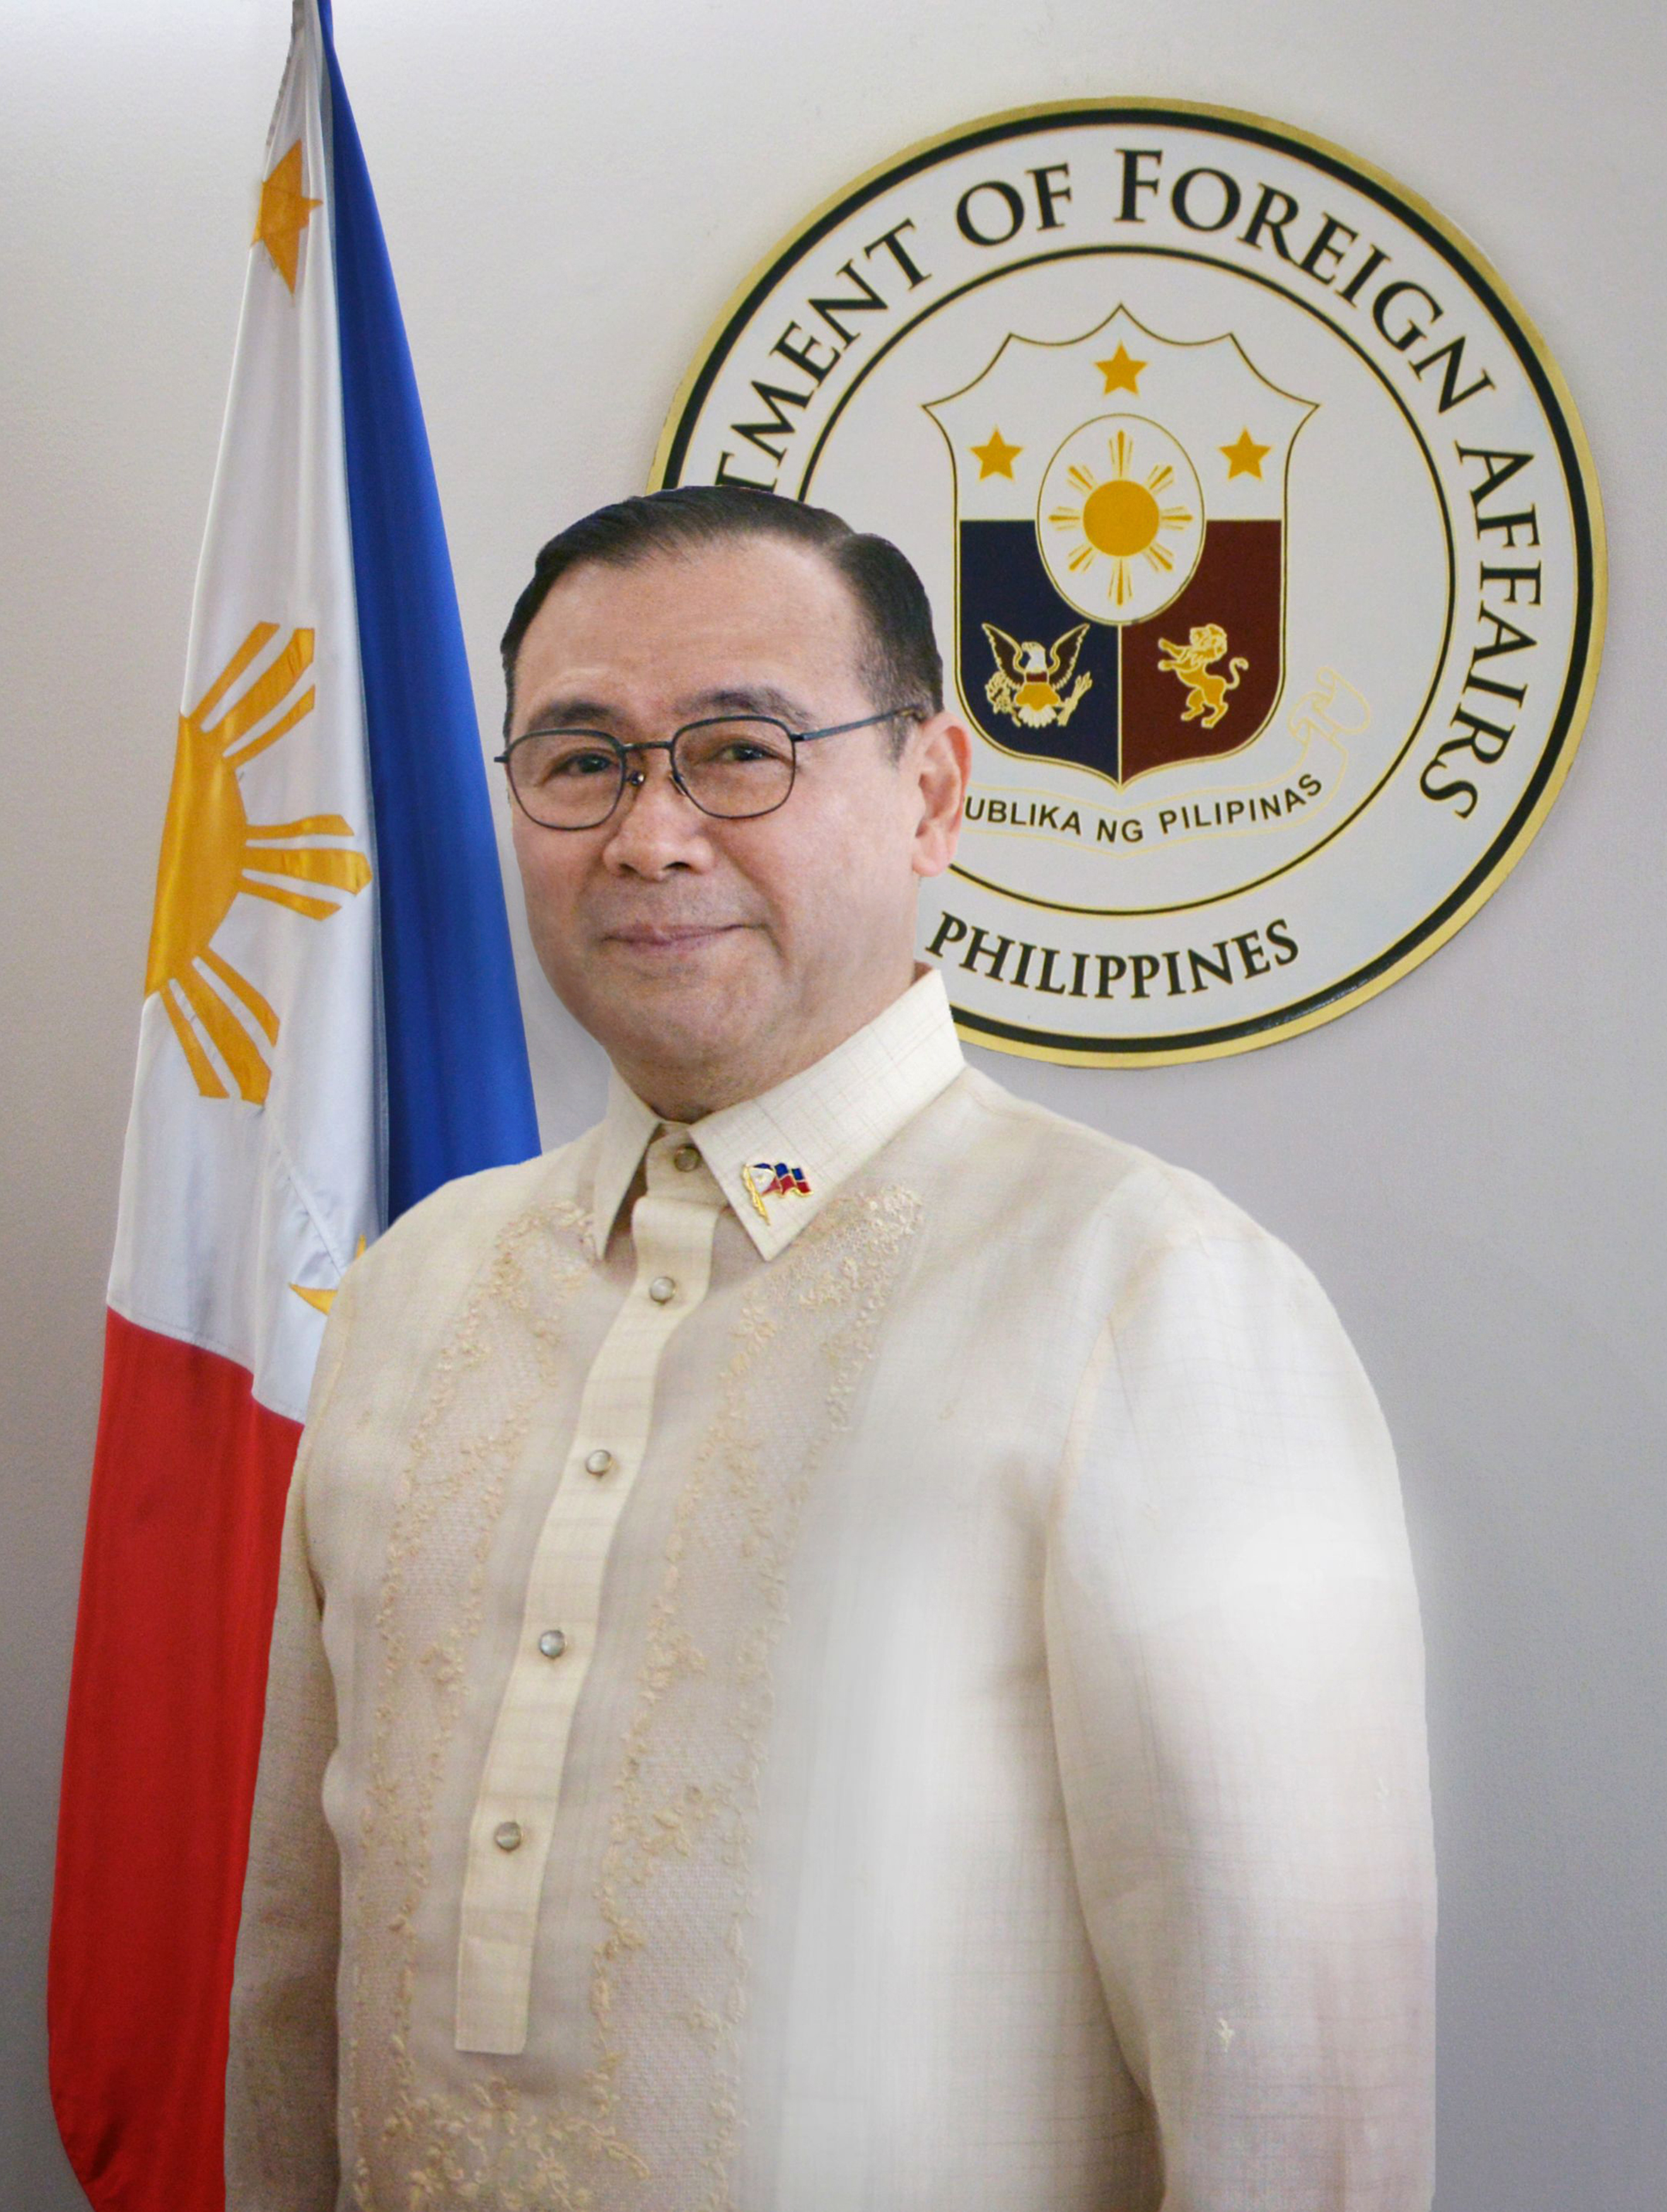 Official Photo of Foreign Affairs Secretary Teodoro L Locsin Jr. FINAL